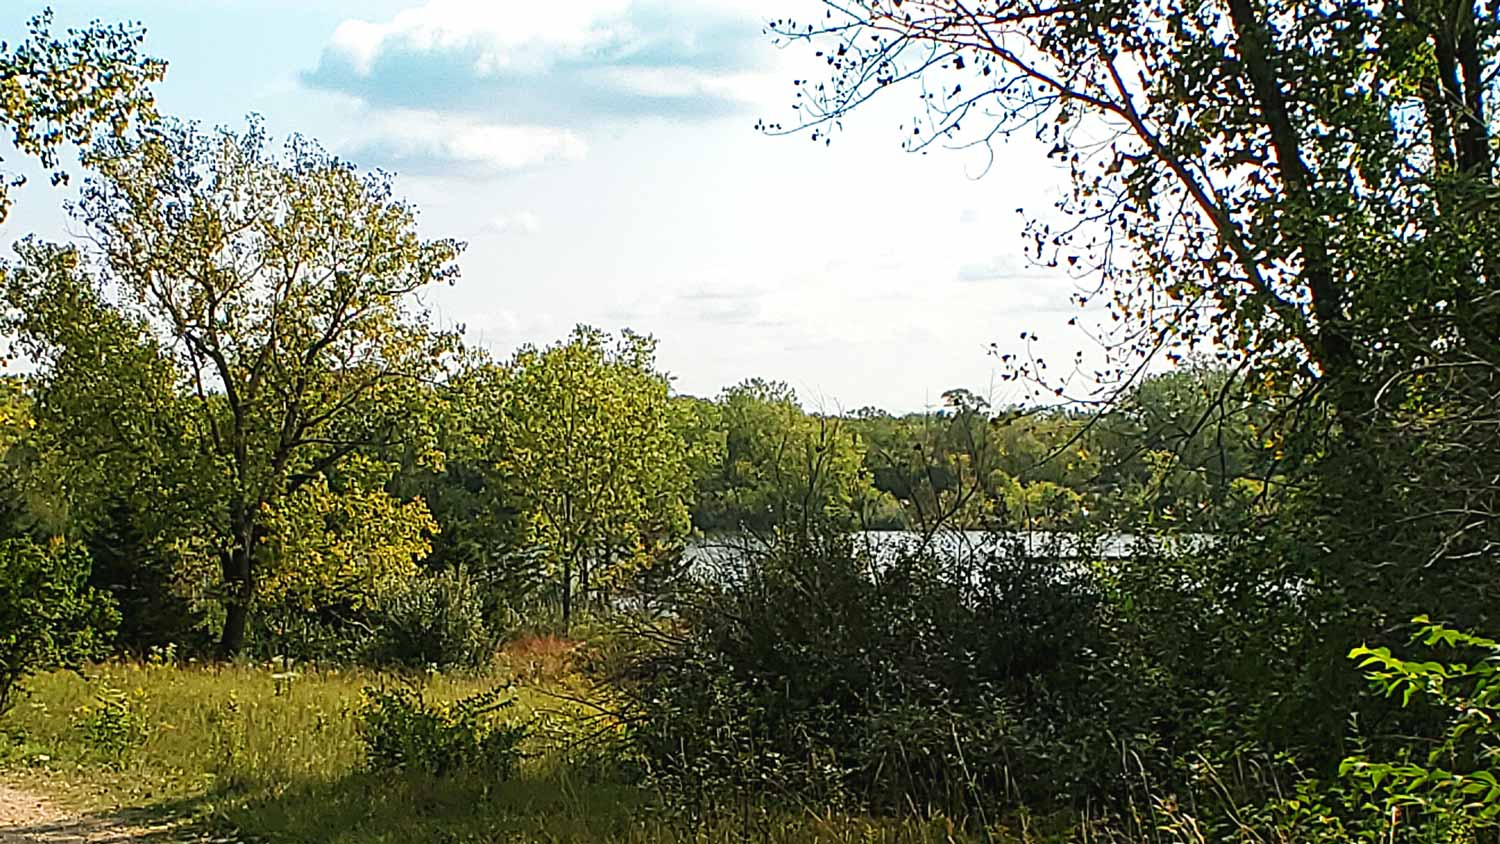 A glimpse of Lake Atwood at The Hollows.